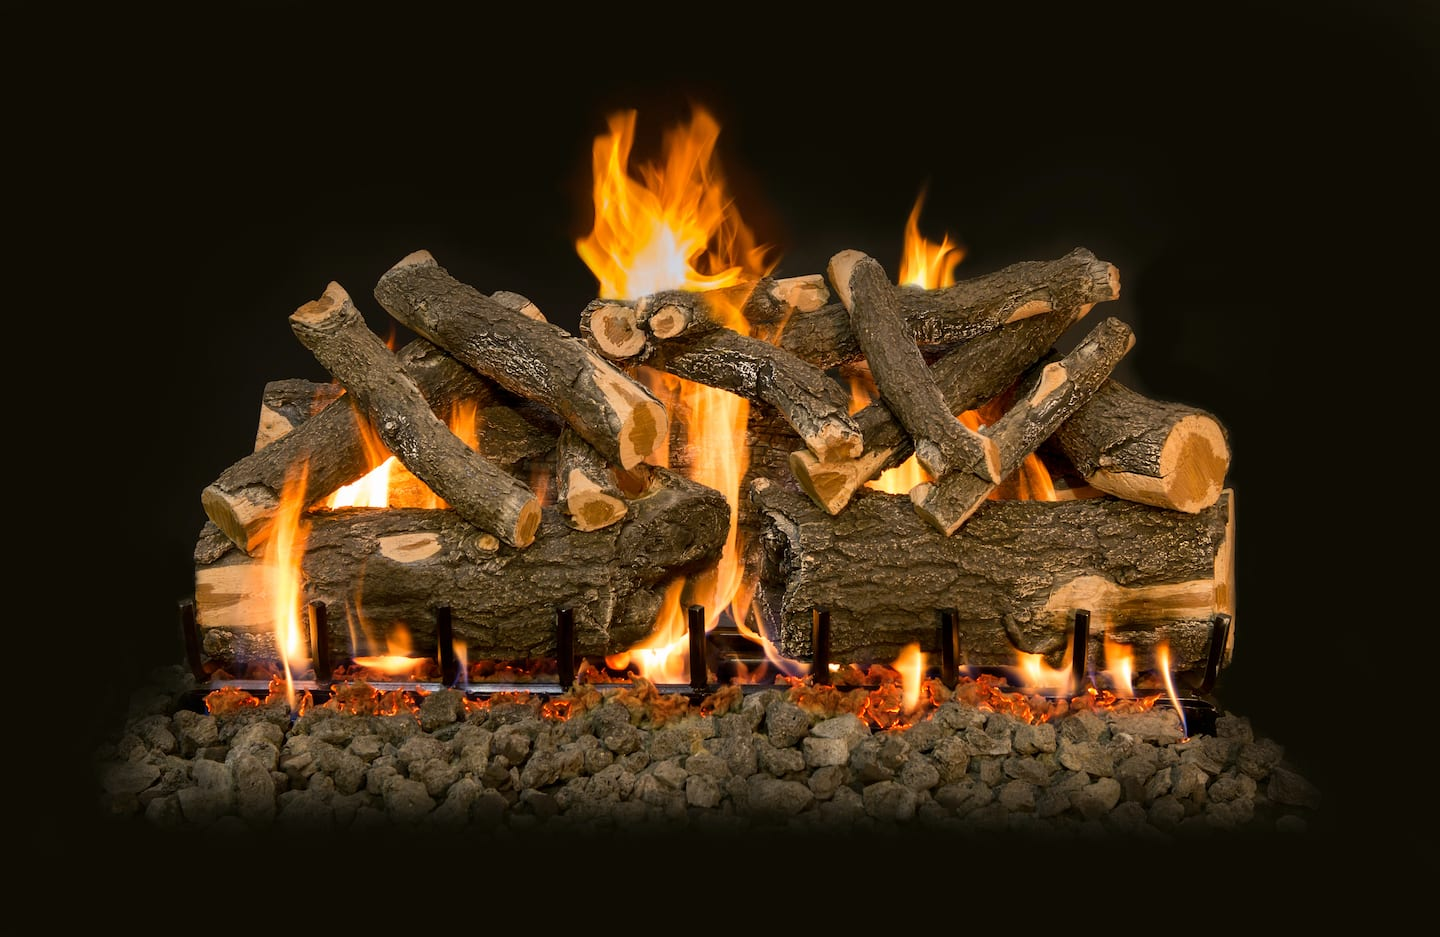 How To Repair A Gas Fireplace If It Won't Turn On | Angie's List